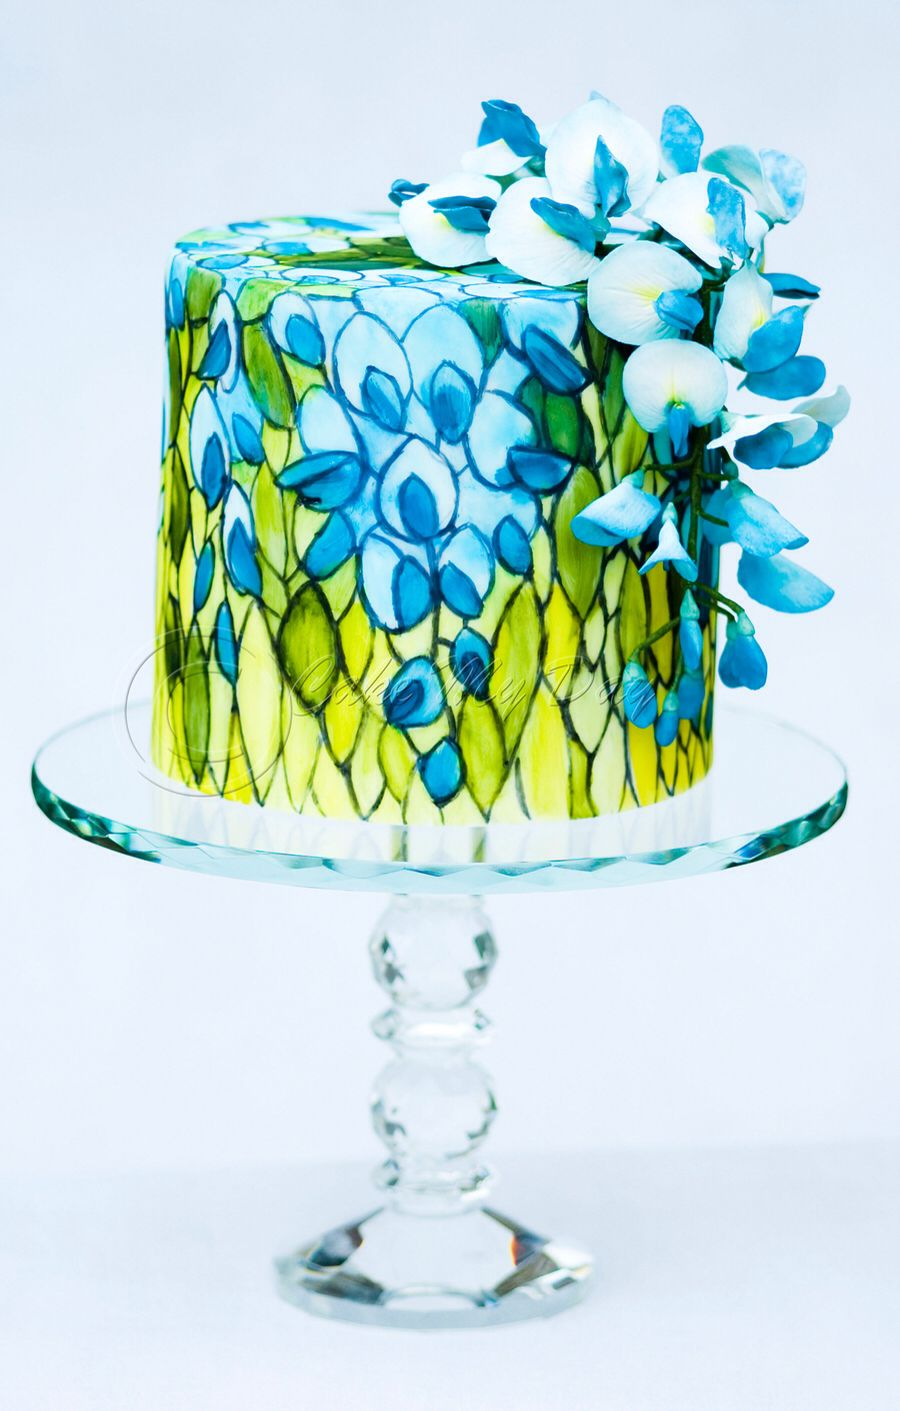 Stained glass cake by Cake My Day.